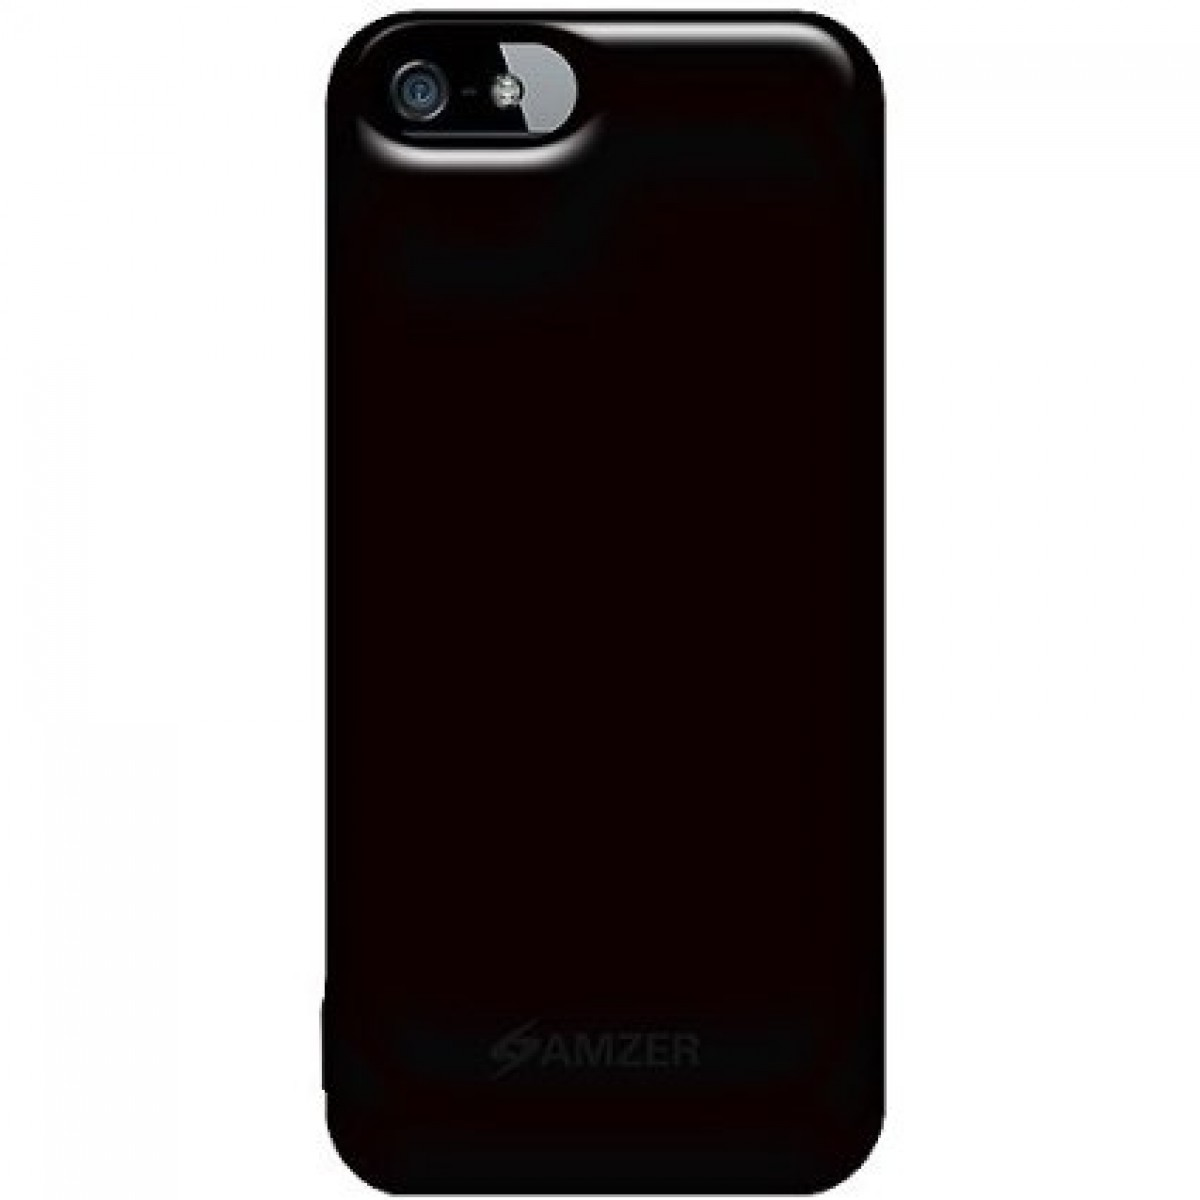 lowest price 4ee17 d5a0a Amzer Soft Gel TPU Gloss Skin Fit Case Cover for Apple iPhone 5, iPhone 5S  (Fits All Carriers) - Black